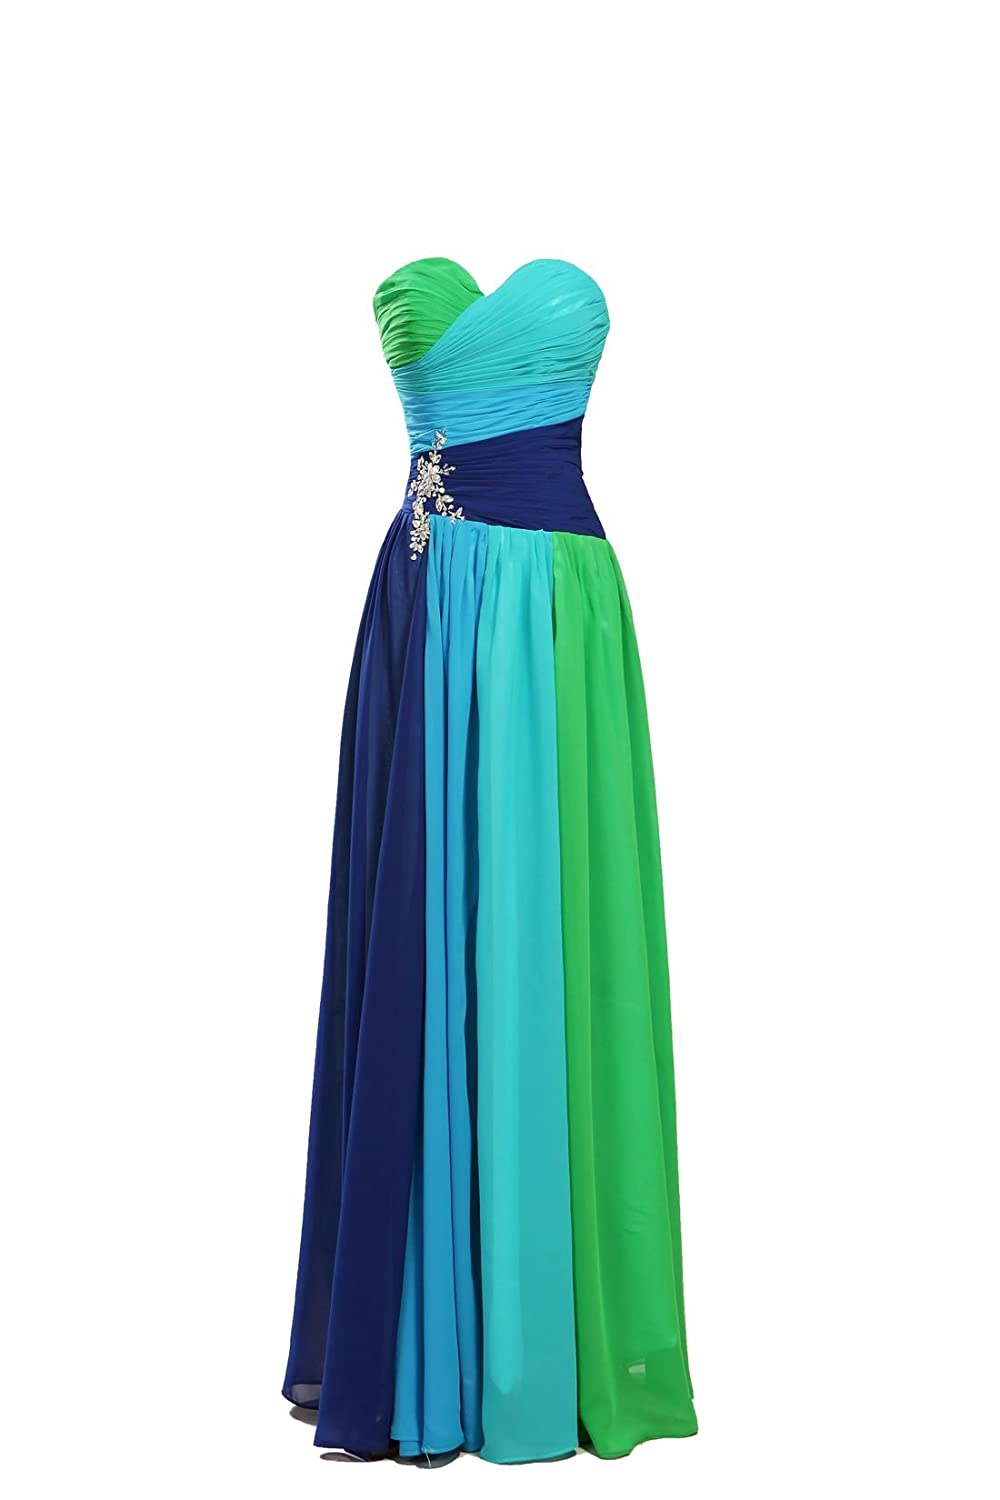 Amazon.com: MISSYDRESS Women\'s Colorful Sweetheart Floor-length ...